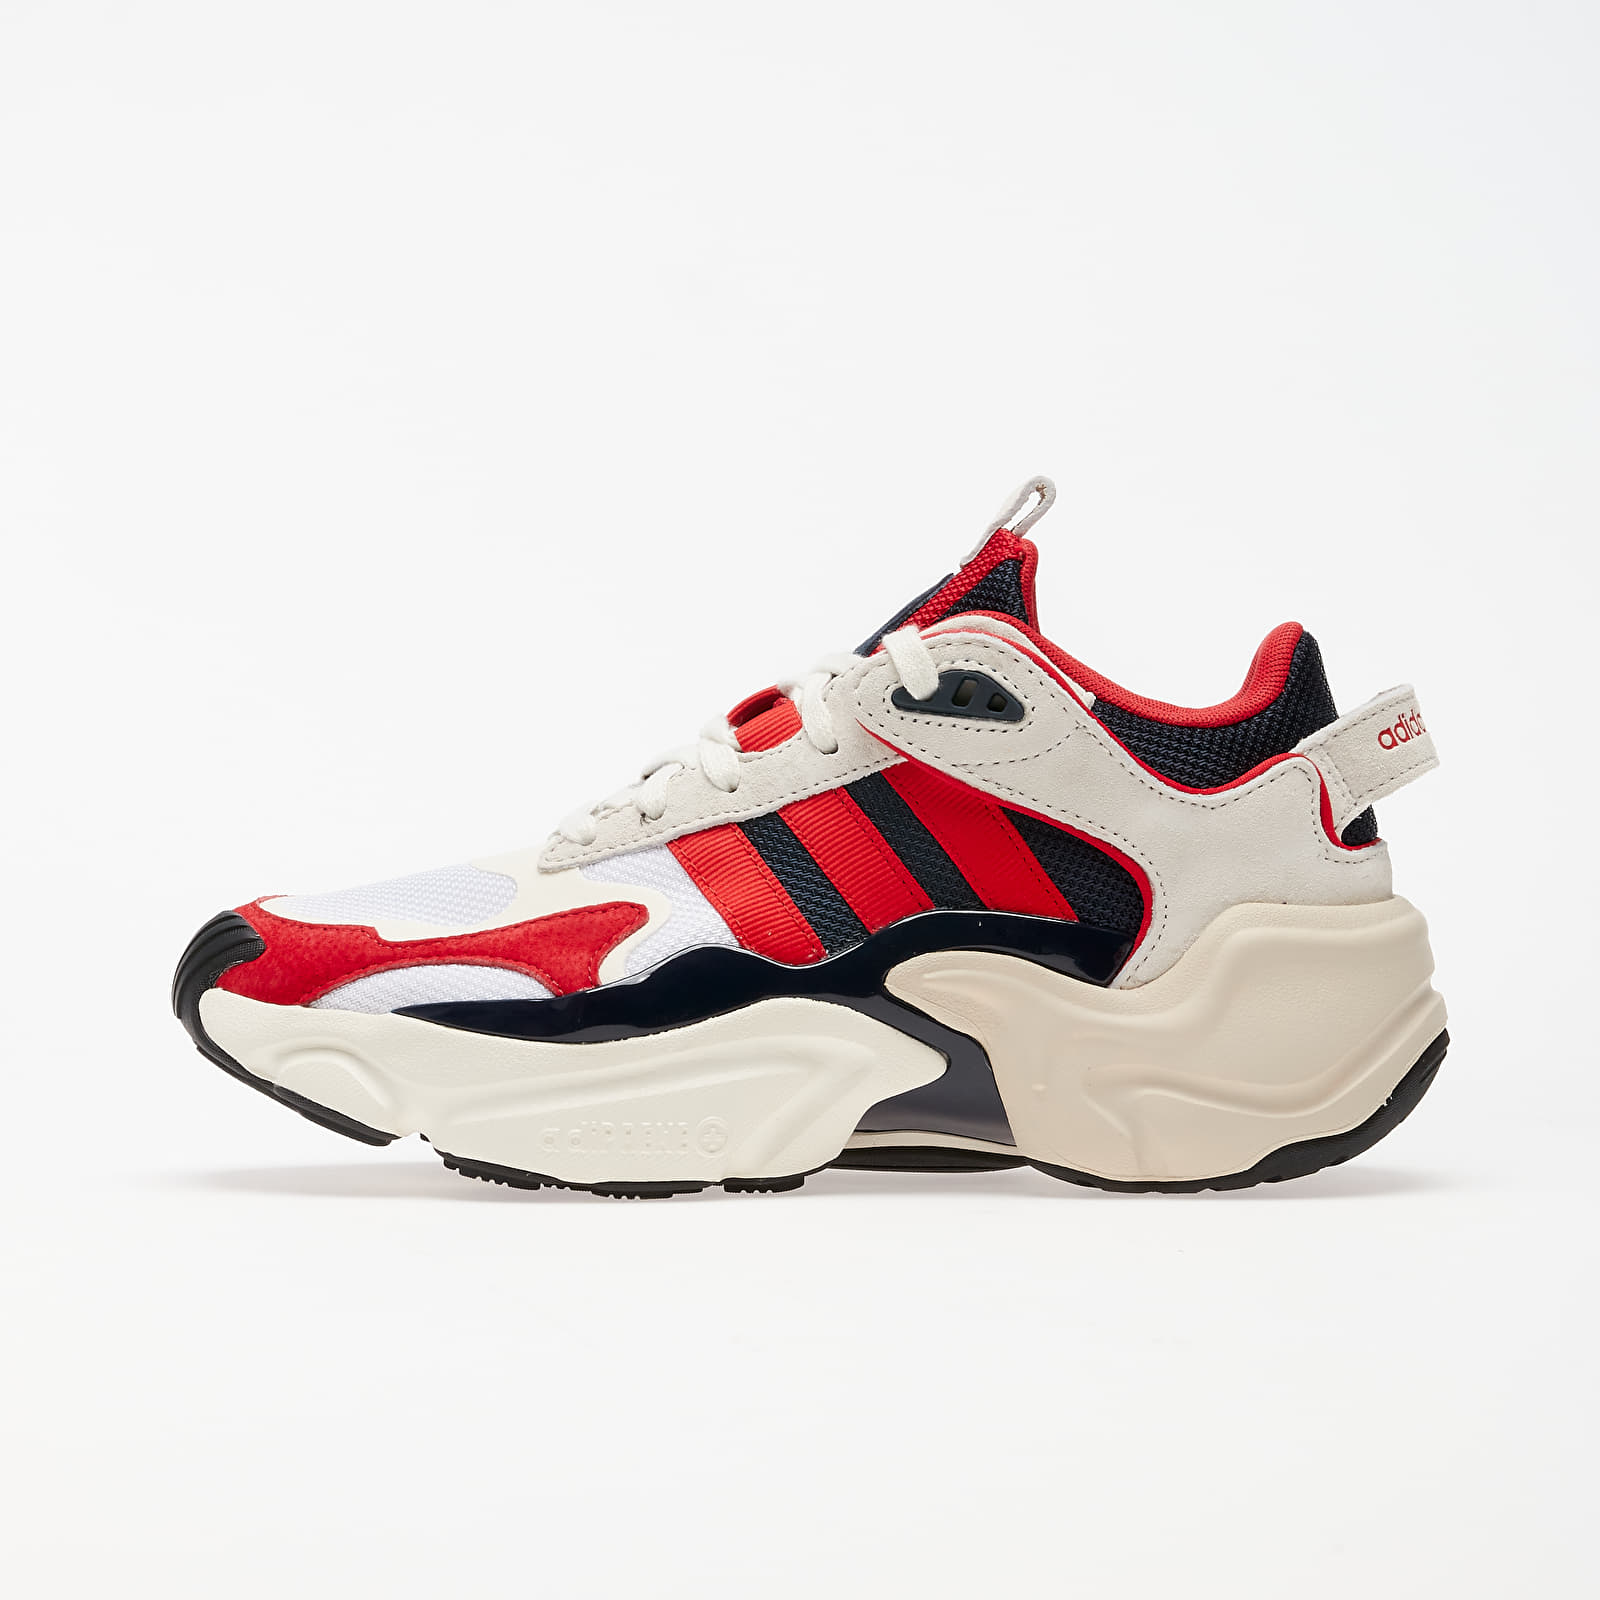 Women's shoes adidas Magmur Runner W Legend Ink/ Lust Red/ Ftw White